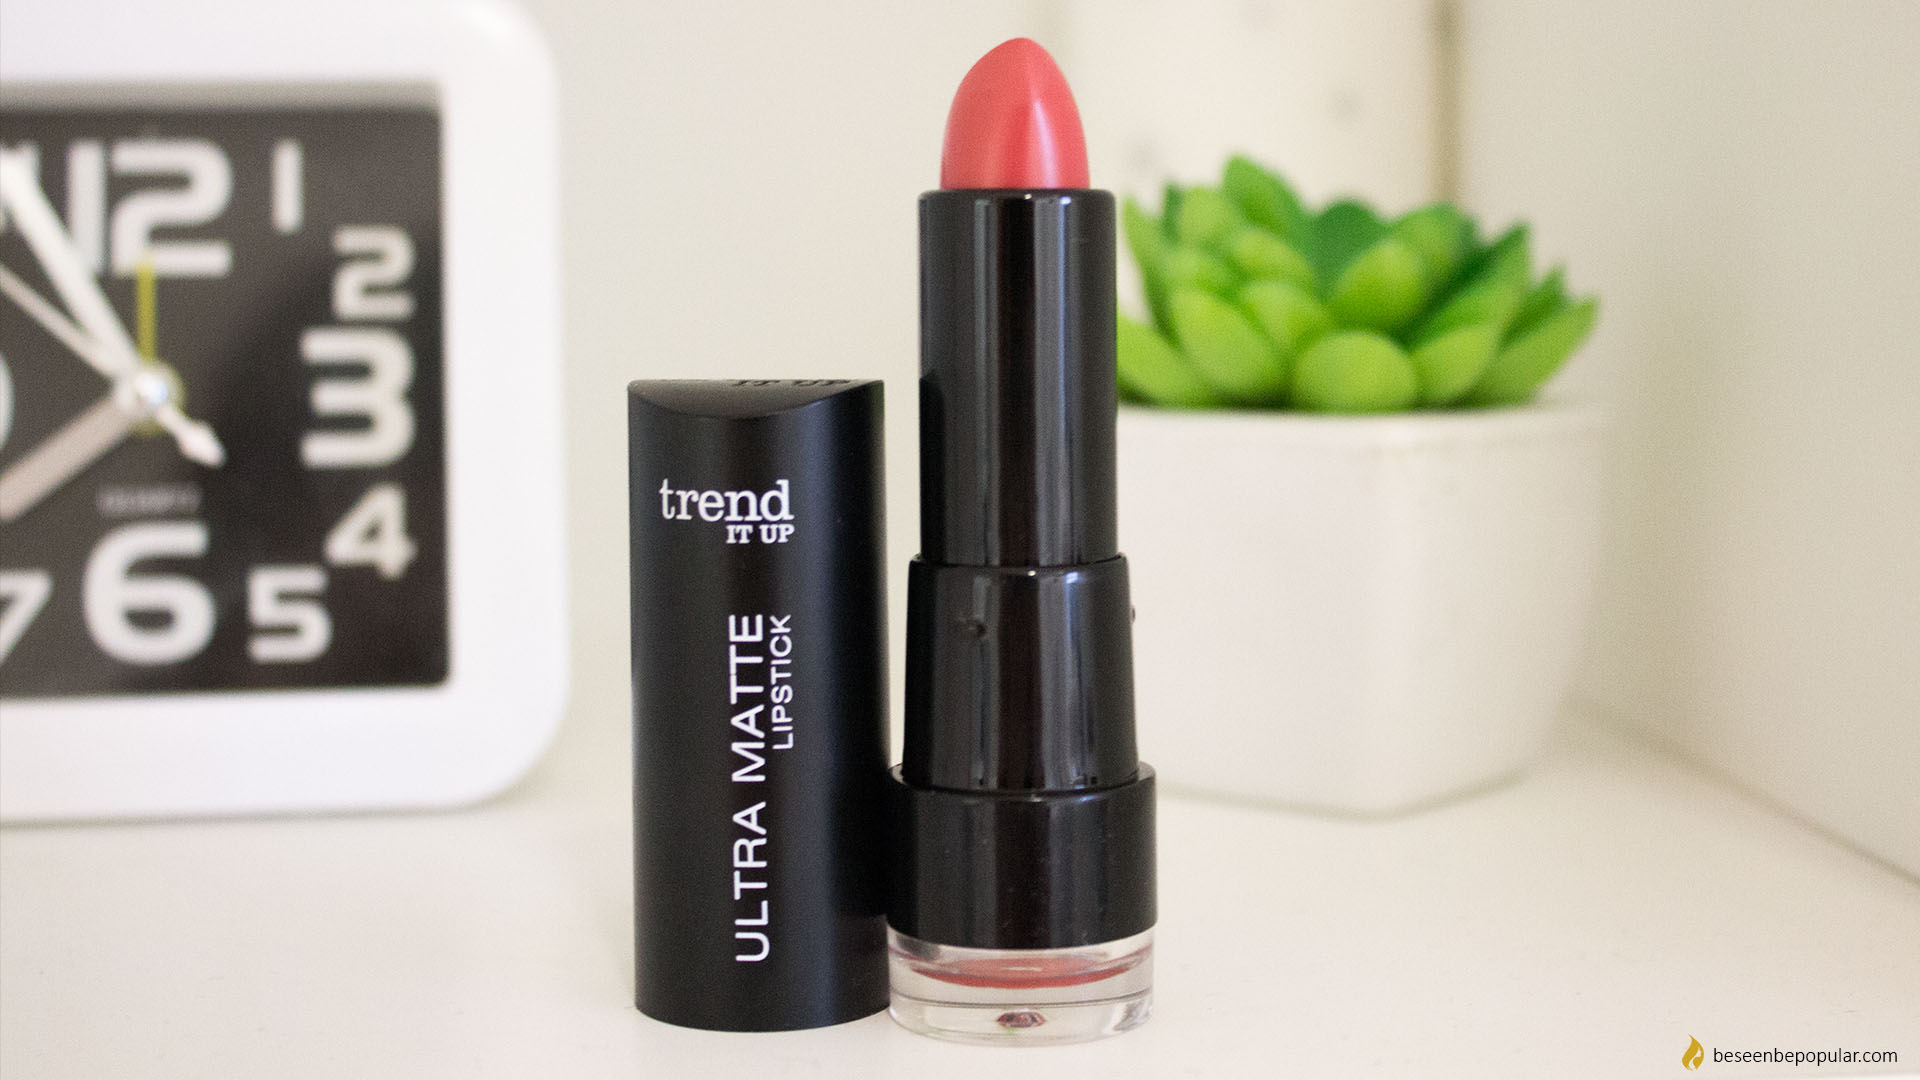 Our Thoughts On Trend It Up Ultra Matte Lipstick Beseenbepopular